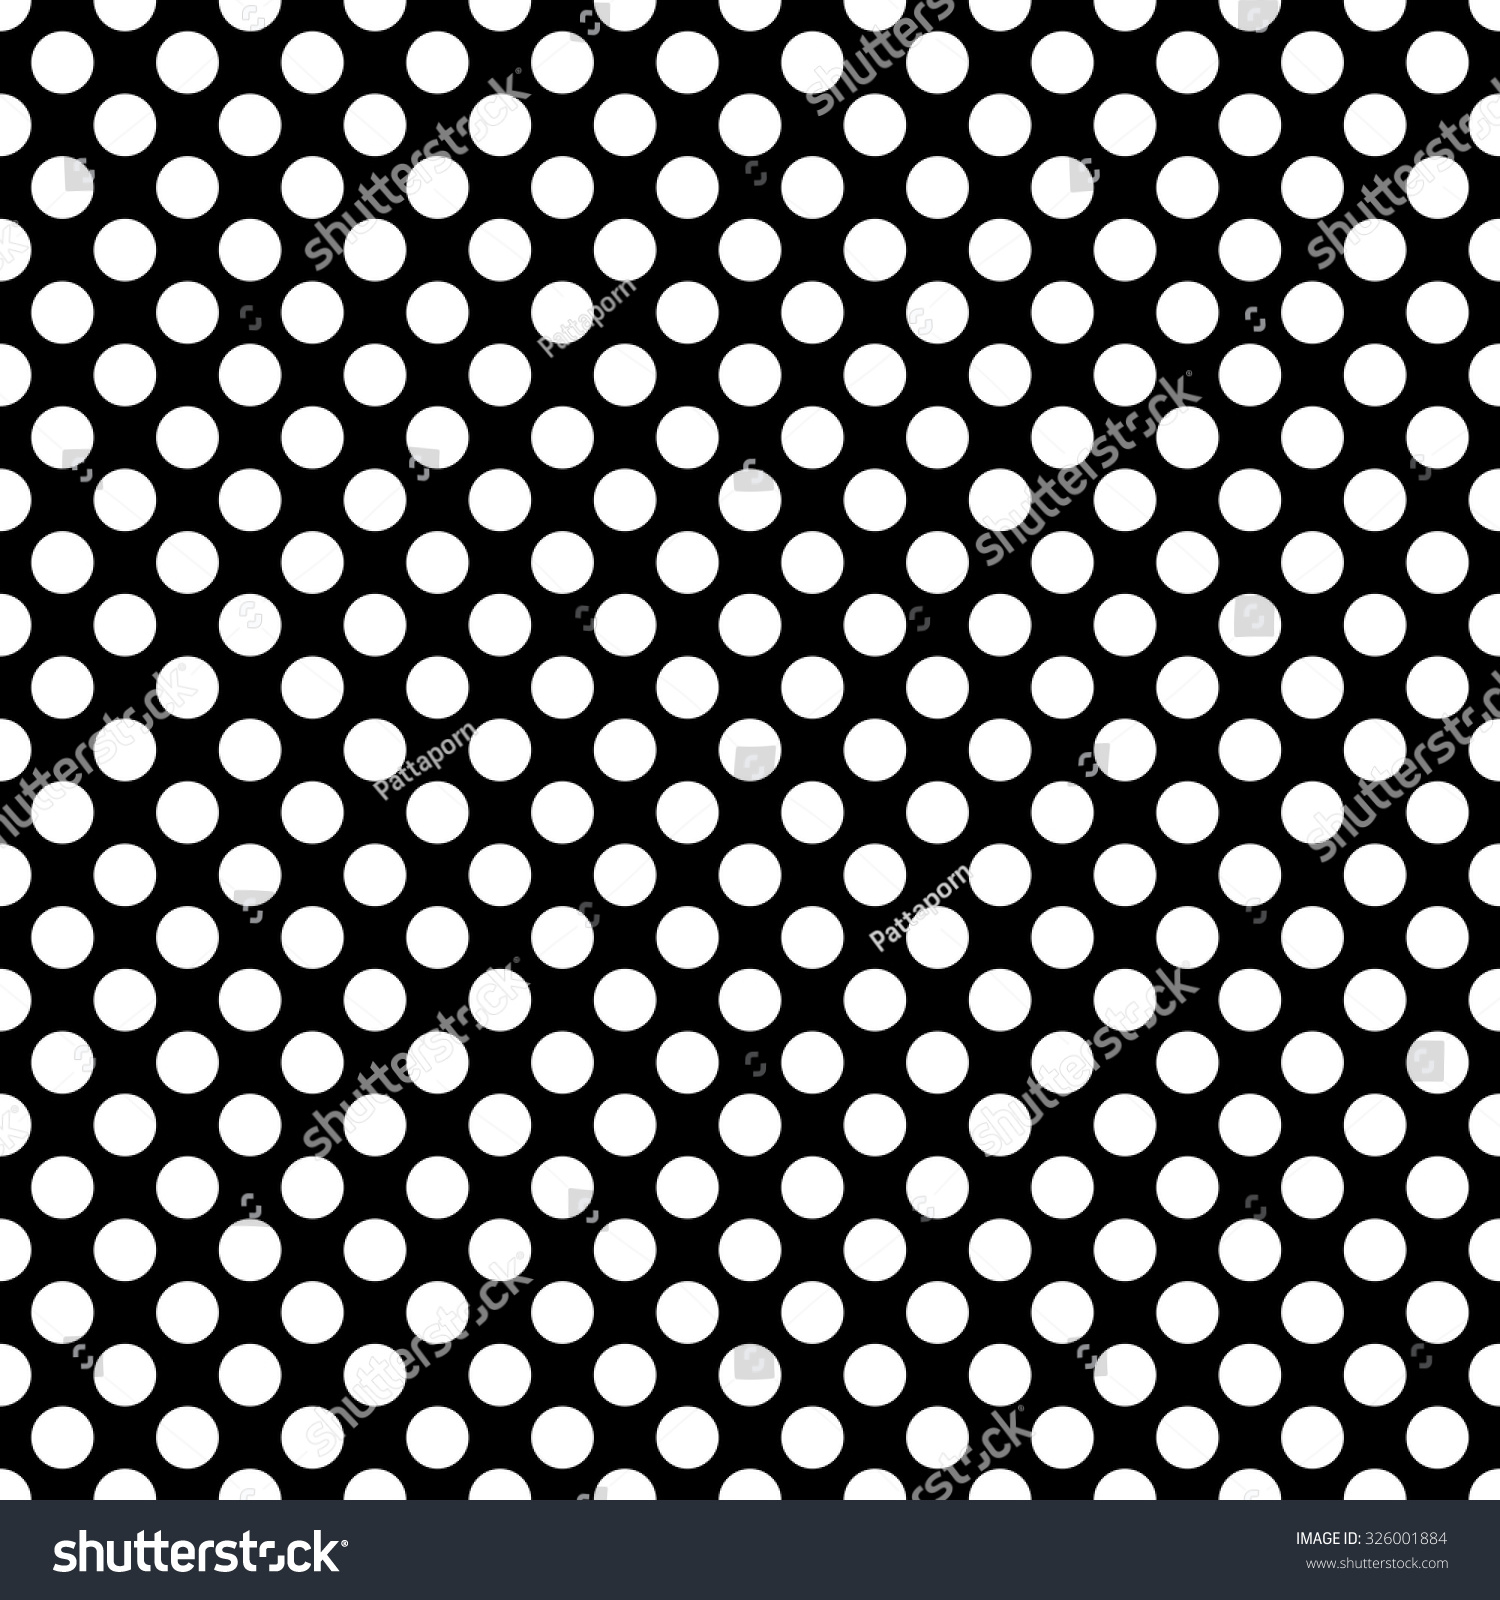 Black and white polka dot pattern - photo#21